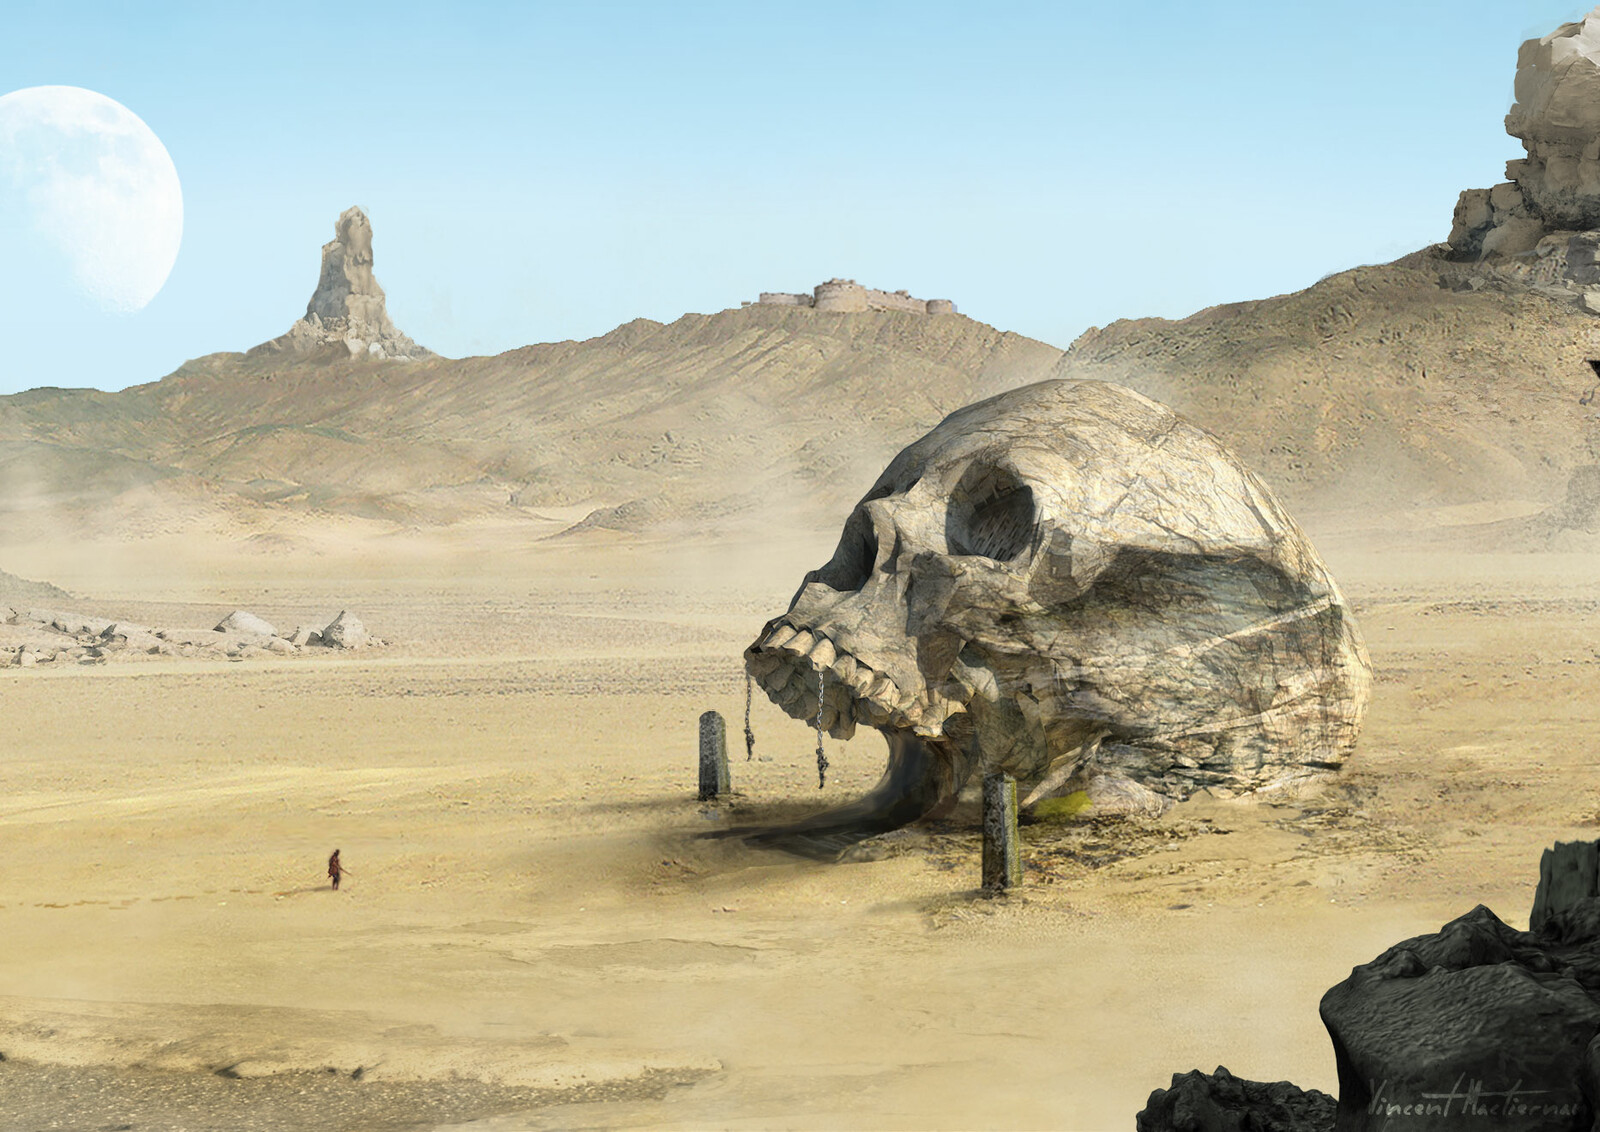 The Desert Skull Entrance